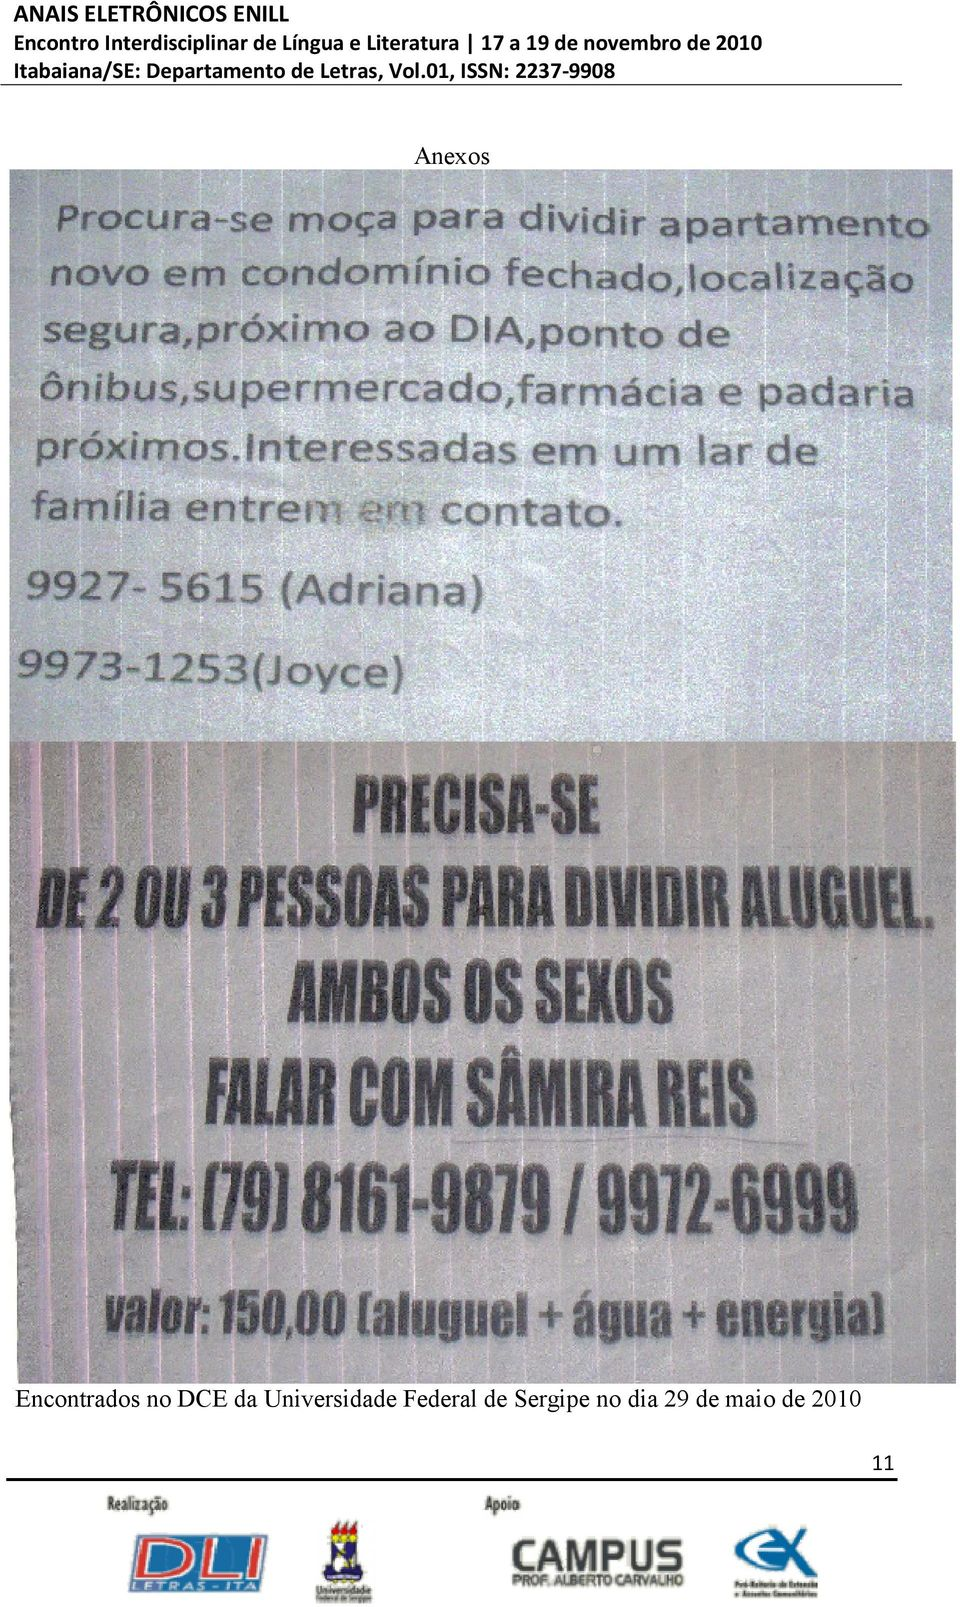 Federal de Sergipe no